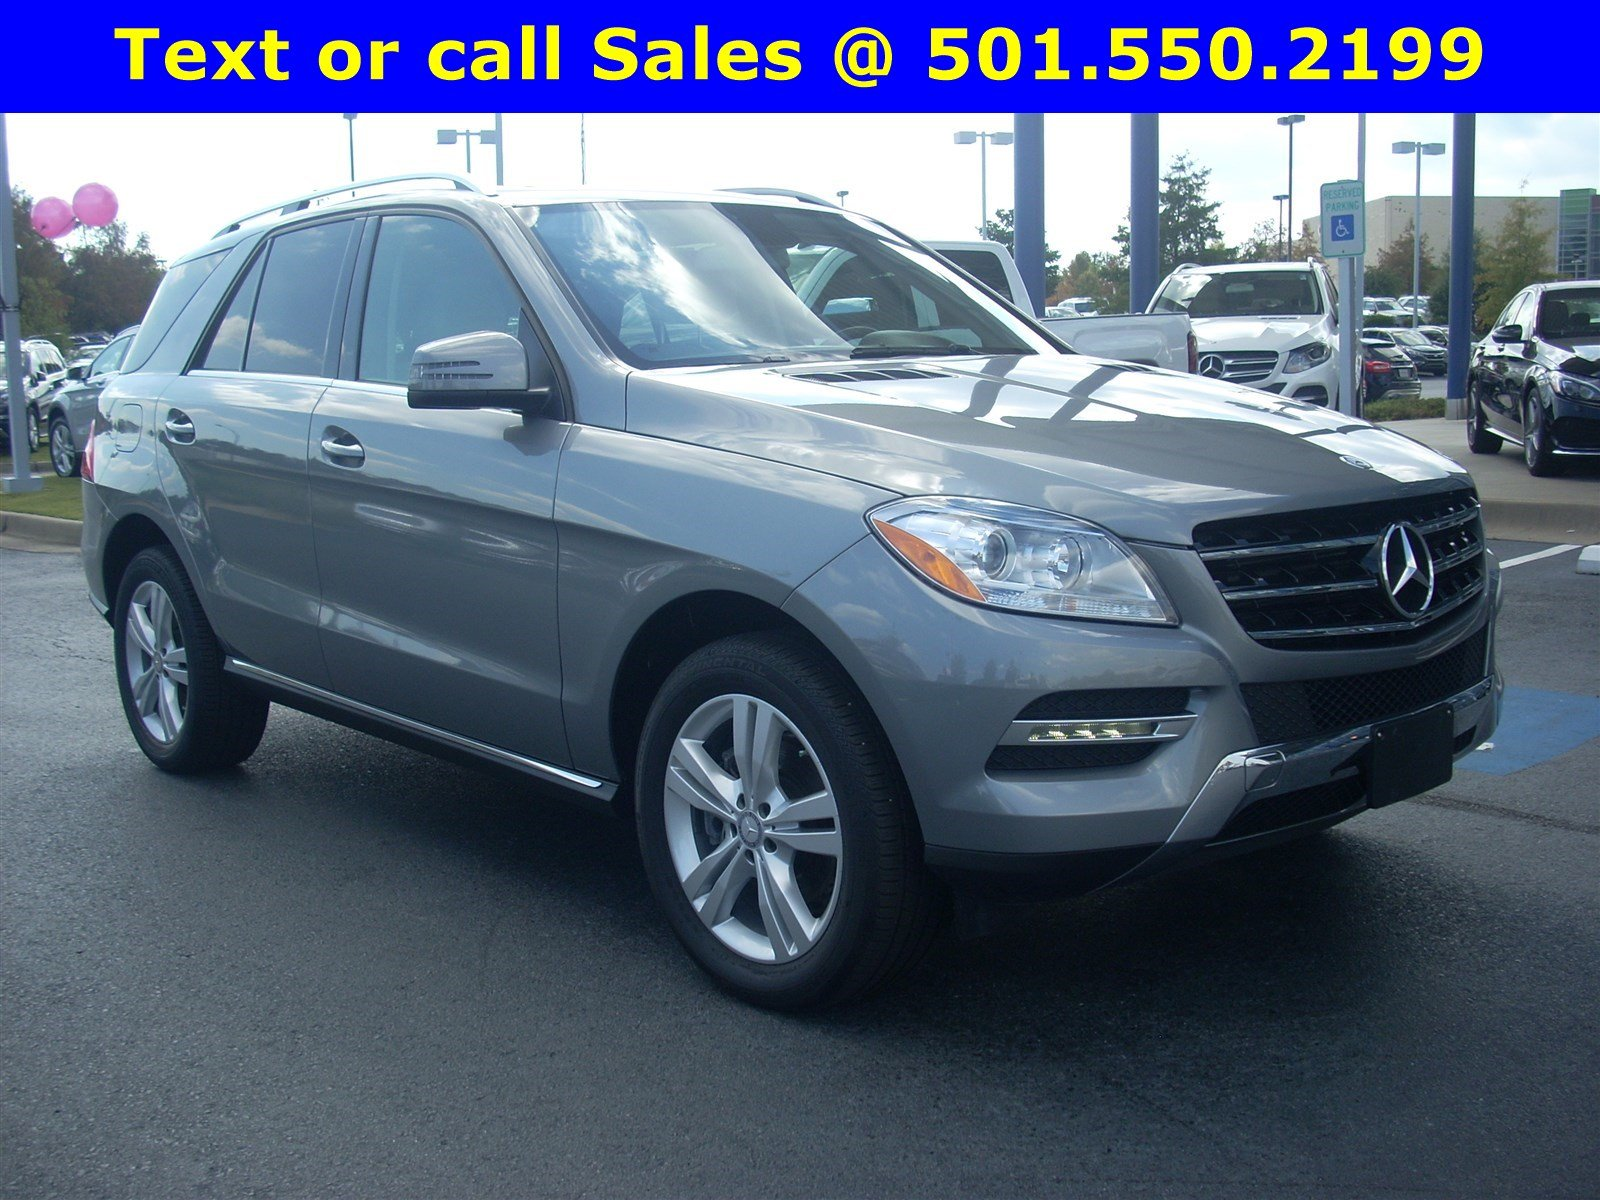 Certified pre owned 2015 mercedes benz m class ml350 suv for Authorized mercedes benz service centers near me